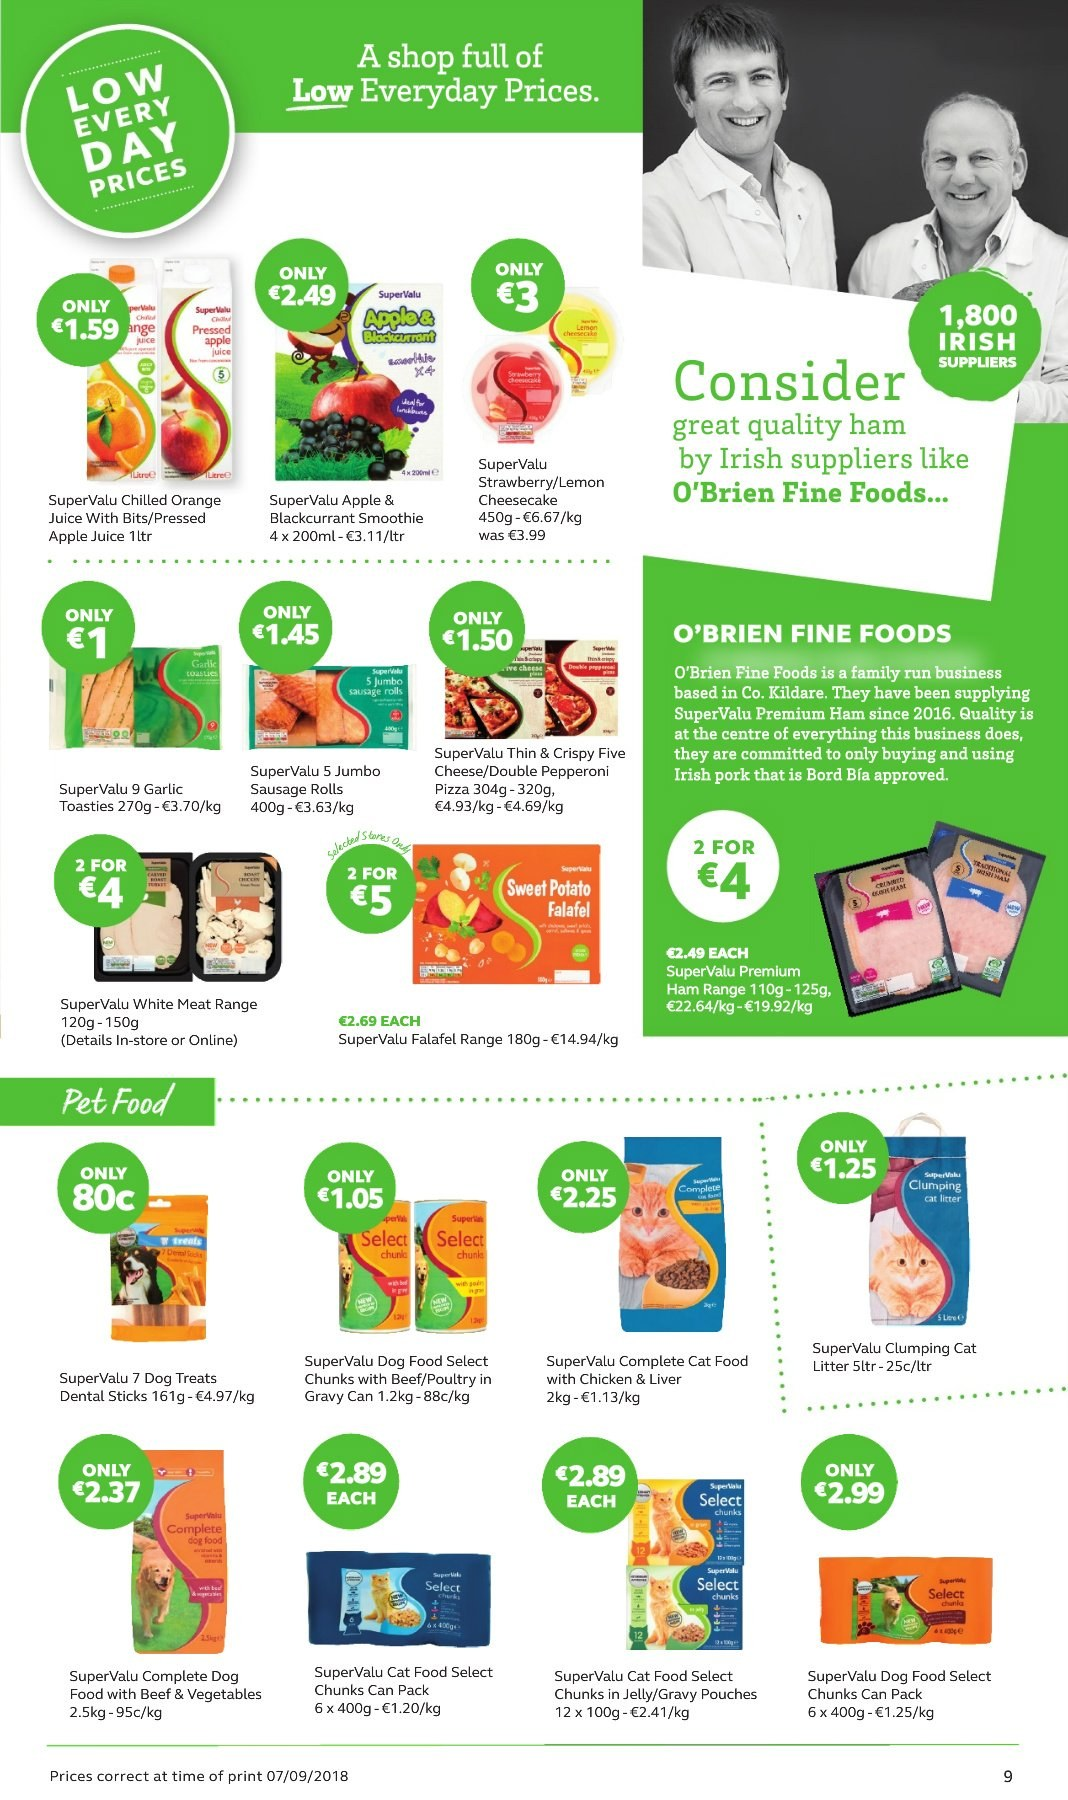 SuperValu offer  - 27.9.2018 - 10.10.2018 - Sales products - sausage rolls, rolls, cheesecake, garlic, sweet potatoe, pizza, ham, sausage, pepperoni, cheese, jelly, apple juice, orange juice, juice, smoothie, animal food, cat food, dog food. Page 9.